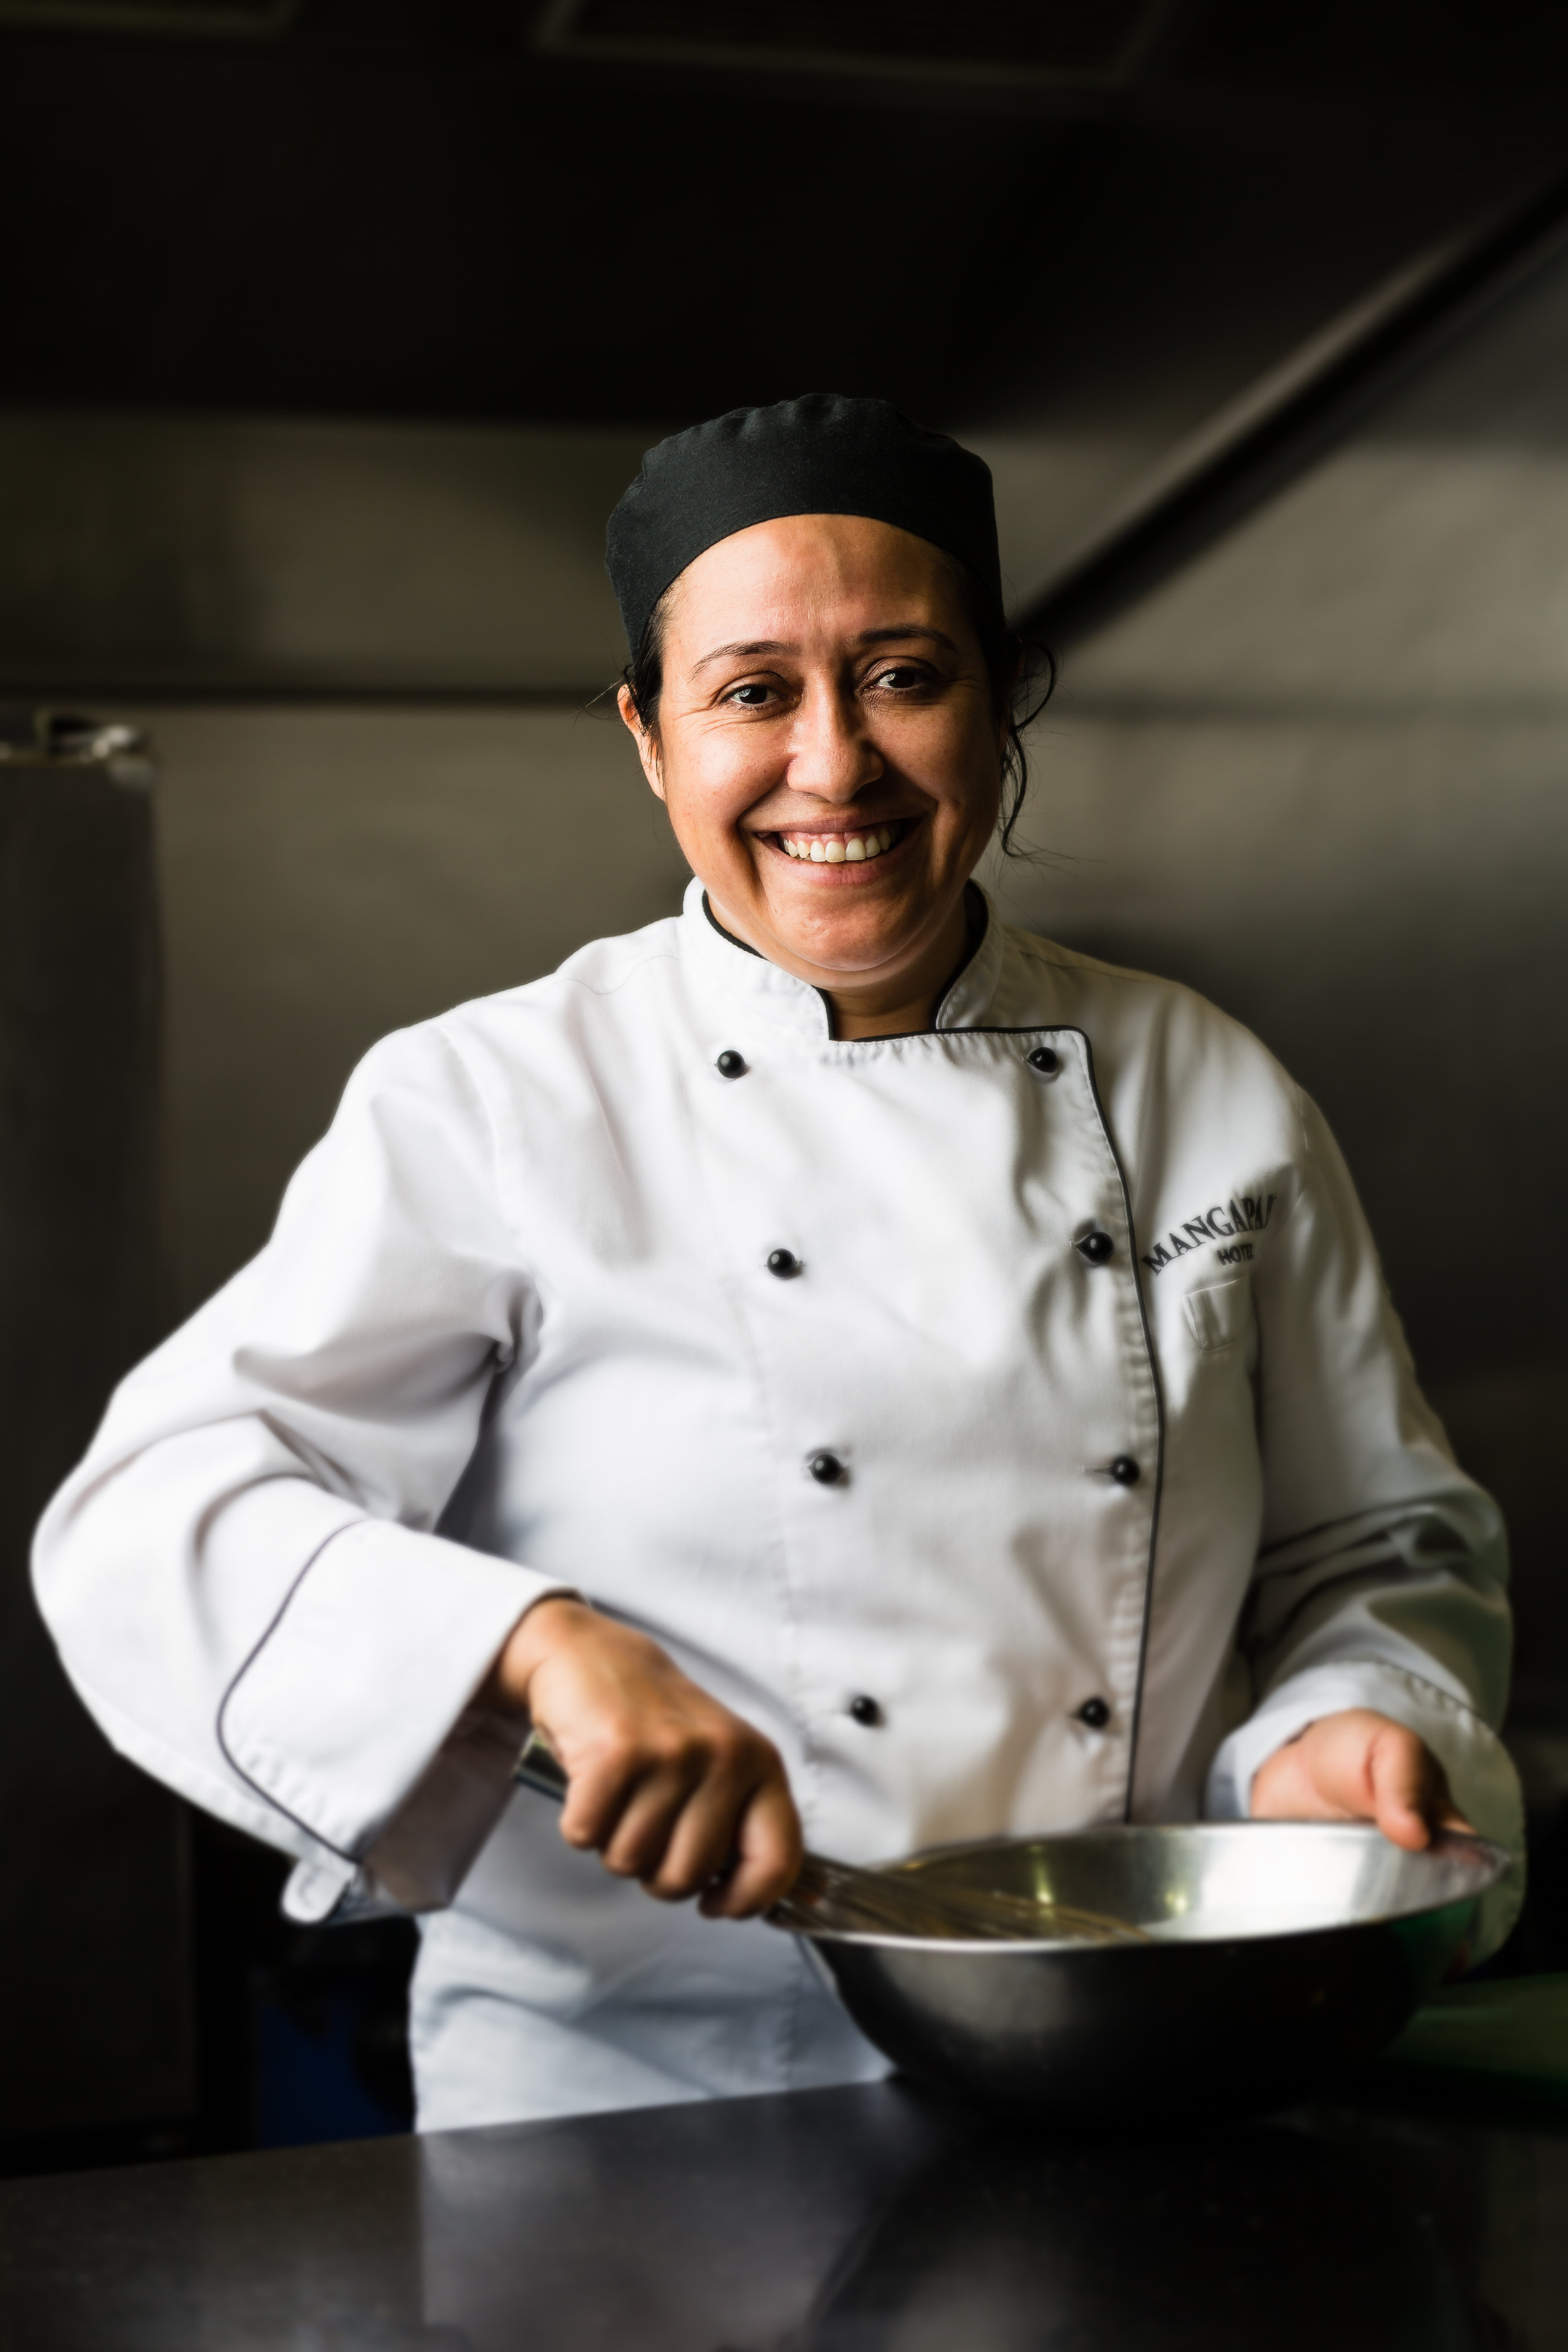 Head Chef, Norka Mella Munoz